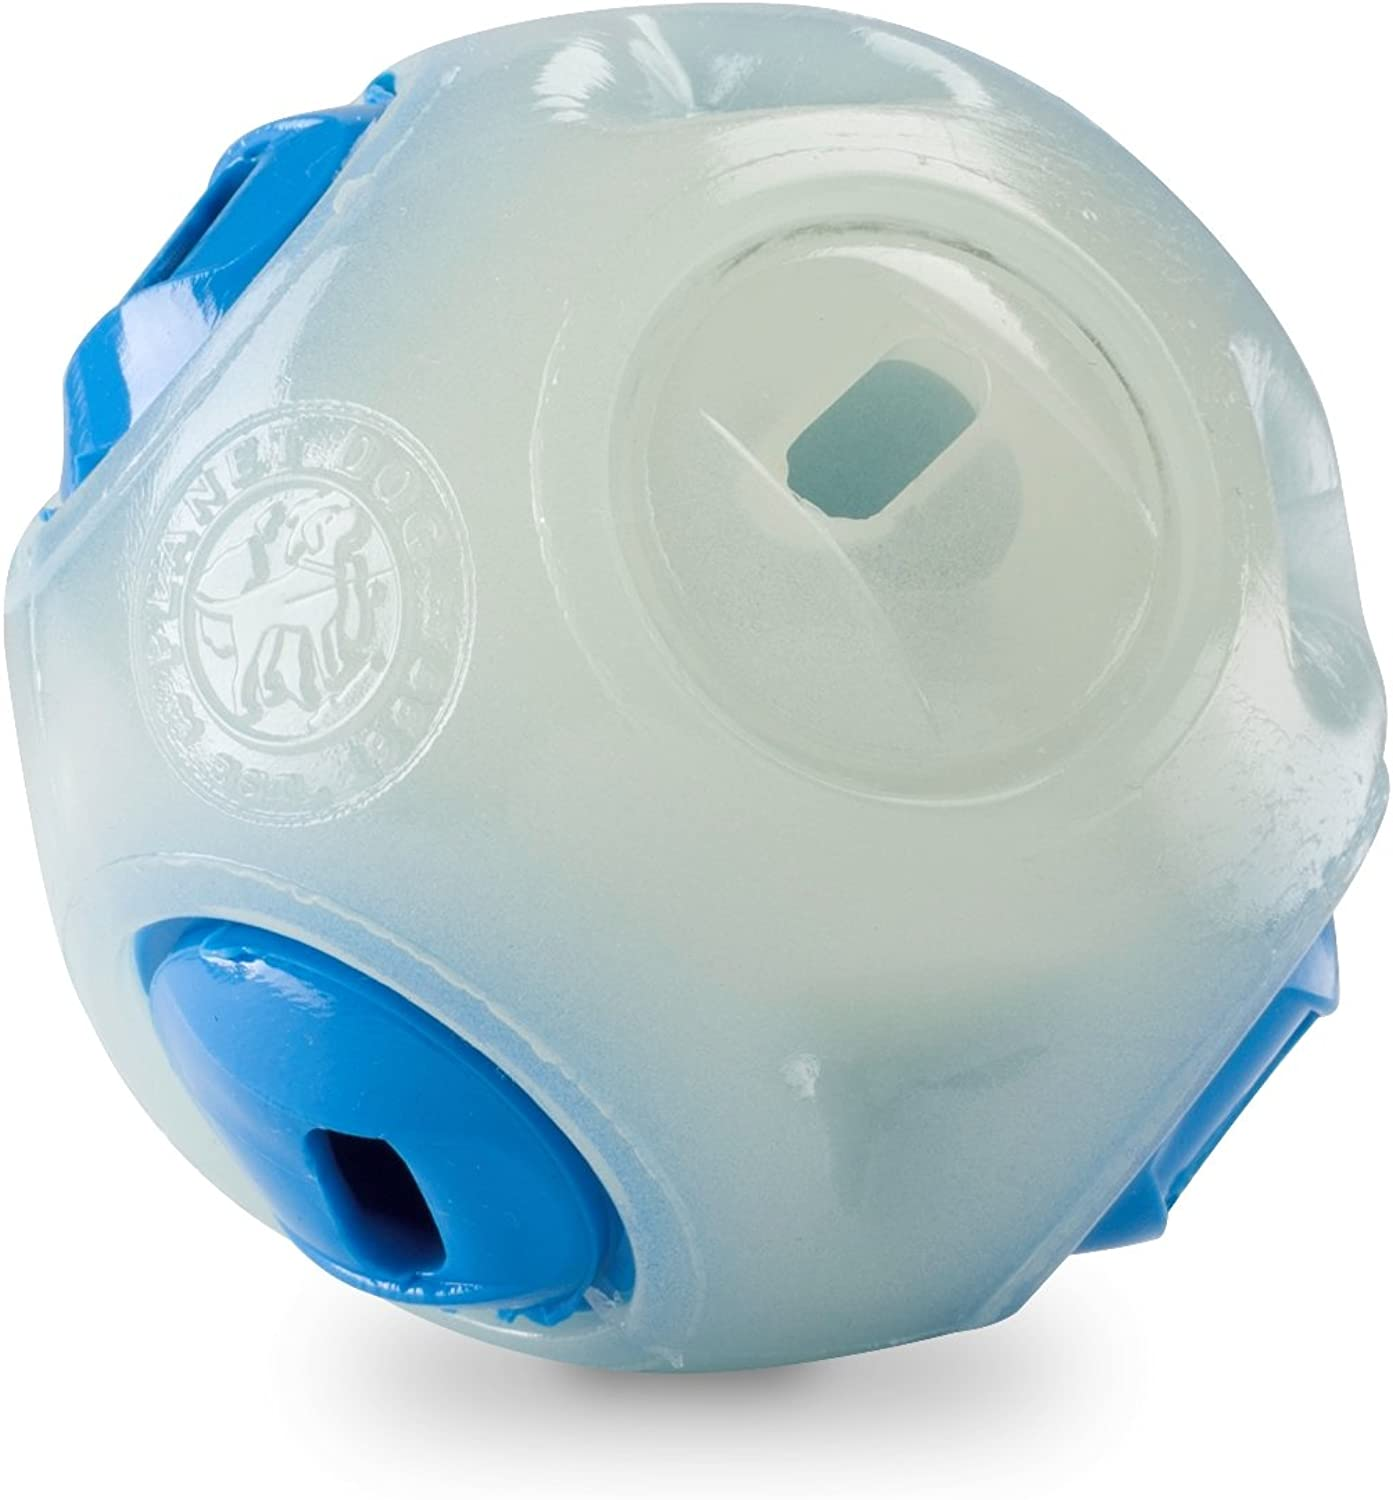 Planet Dog Orbee Tuff Whistle Interactive Fetch Guaranteed Durable Dog Ball, Made in The USA, Glows in The Dark, 2.5Inch, Glow and bluee